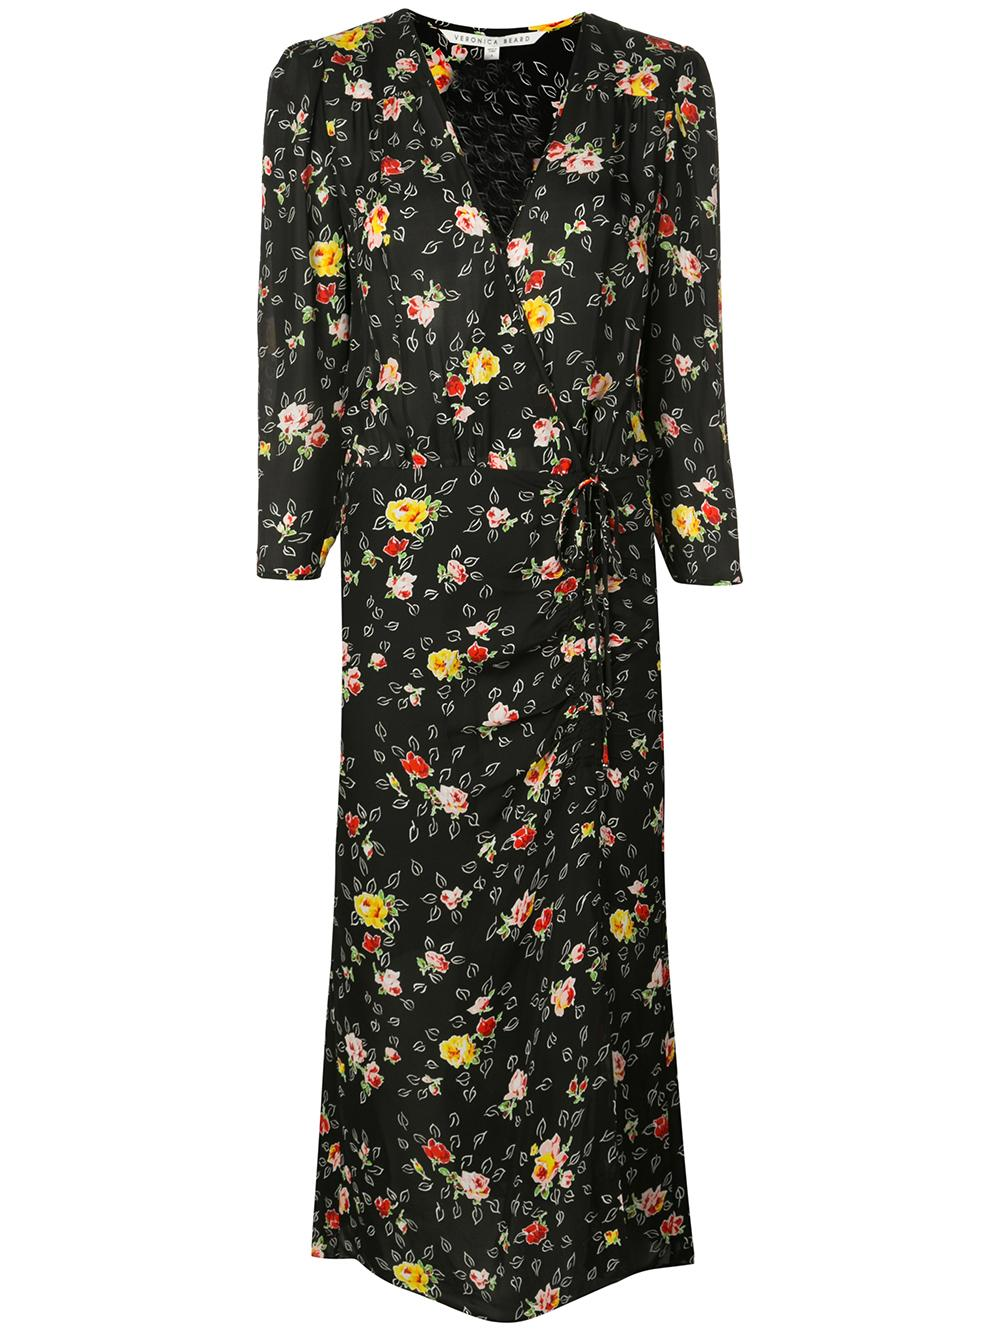 ARIELLE 3/4 Sleeve V-Neck Floral Midi Dress